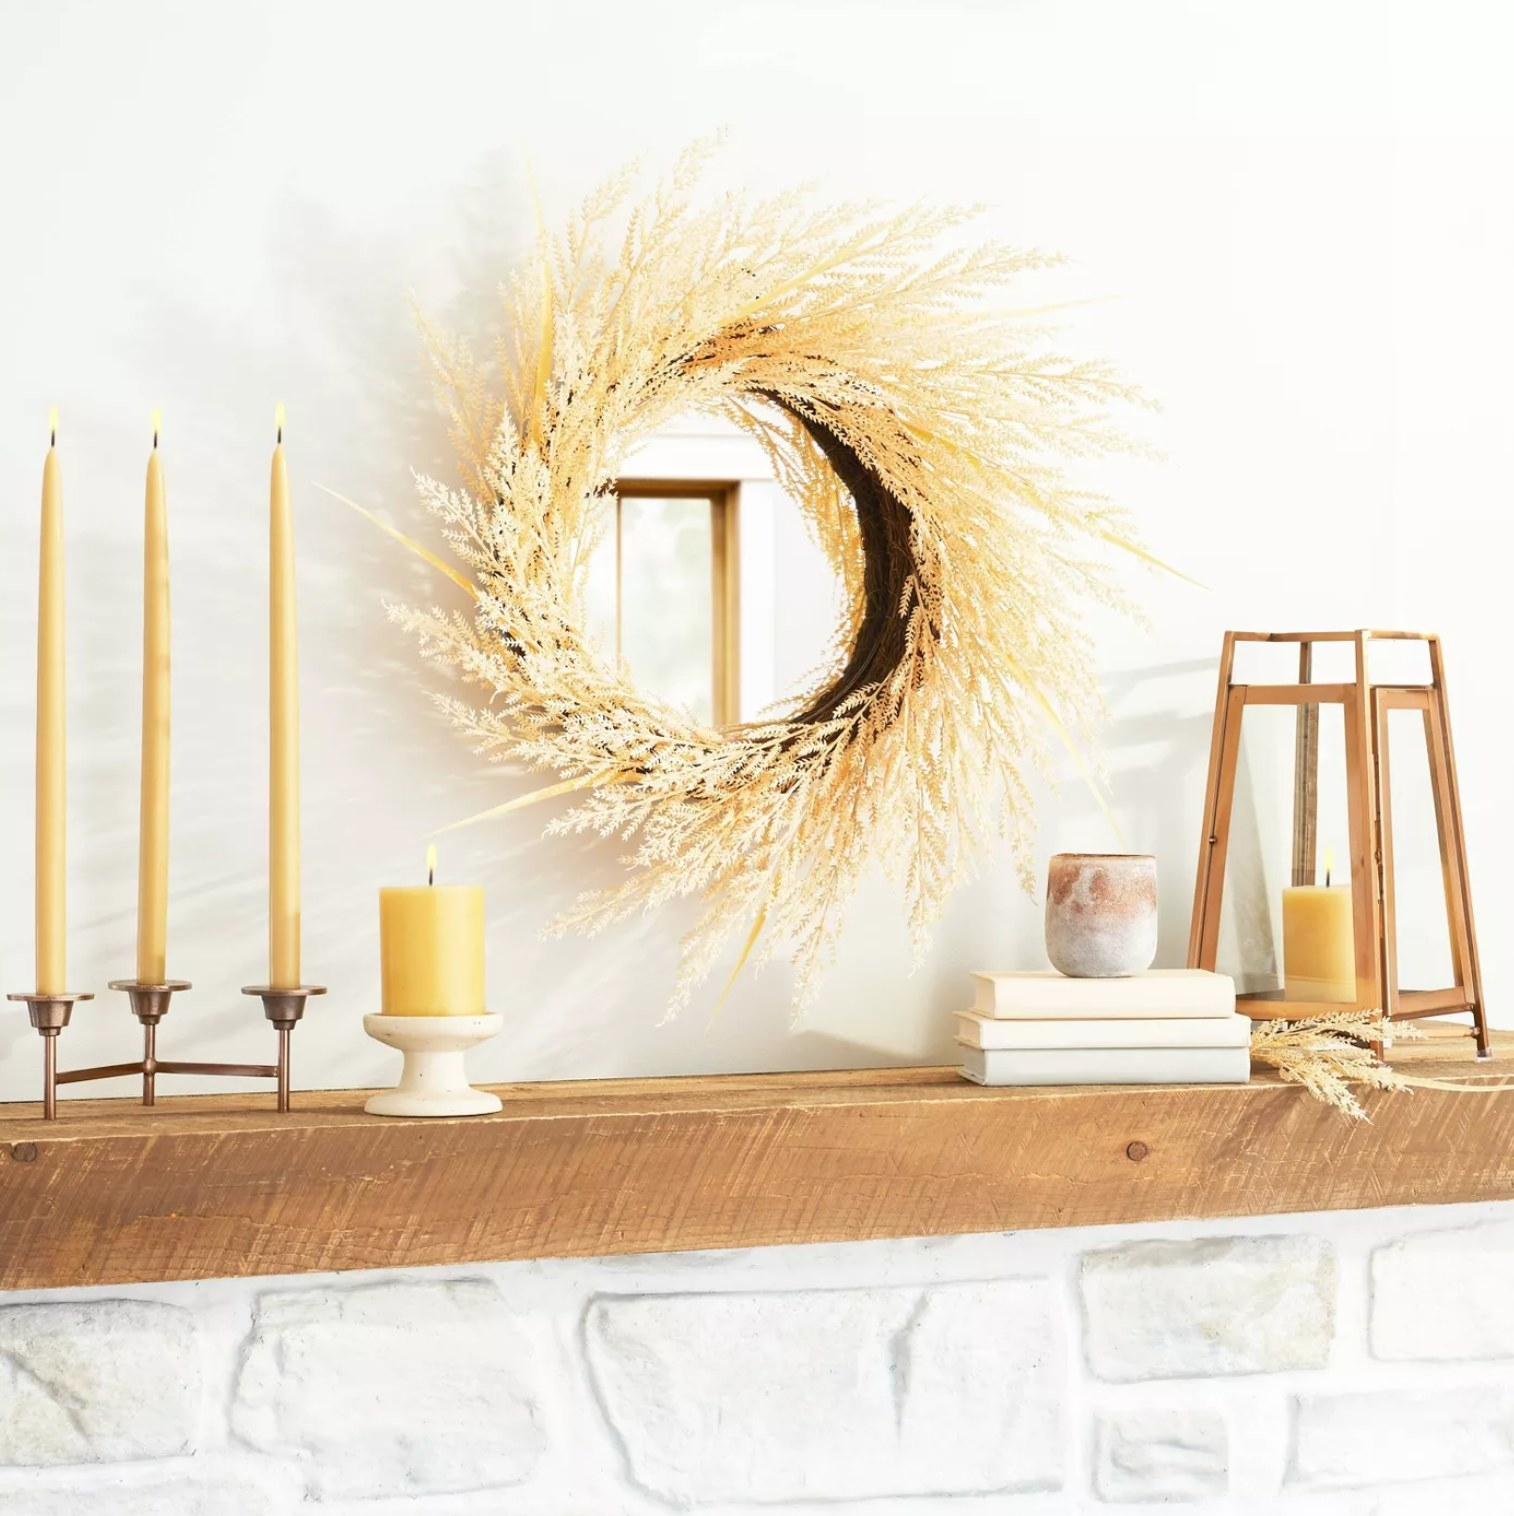 the faux plant wreath hanging around a circle mirror on a wall with candles, books, and other decorations on the wooden hearth beneath it